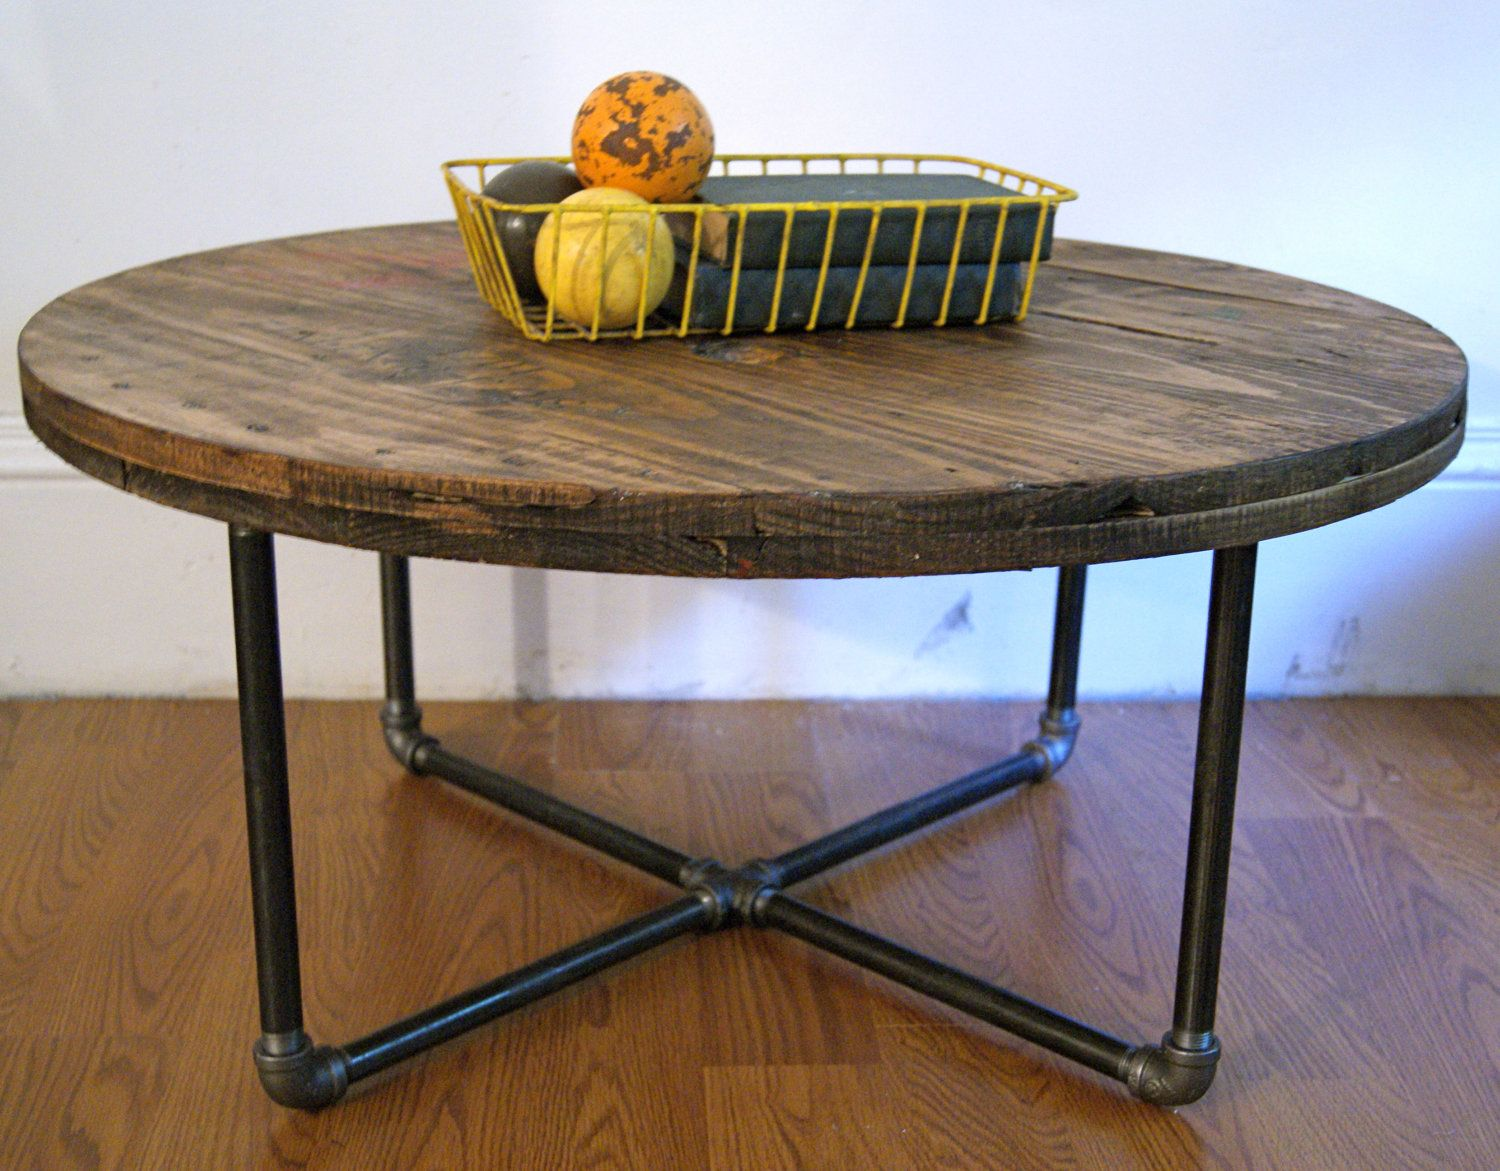 Diy Round Coffee Table 30 Diameter Reclaimed Wood Spool Coffee Table Reserved 32000